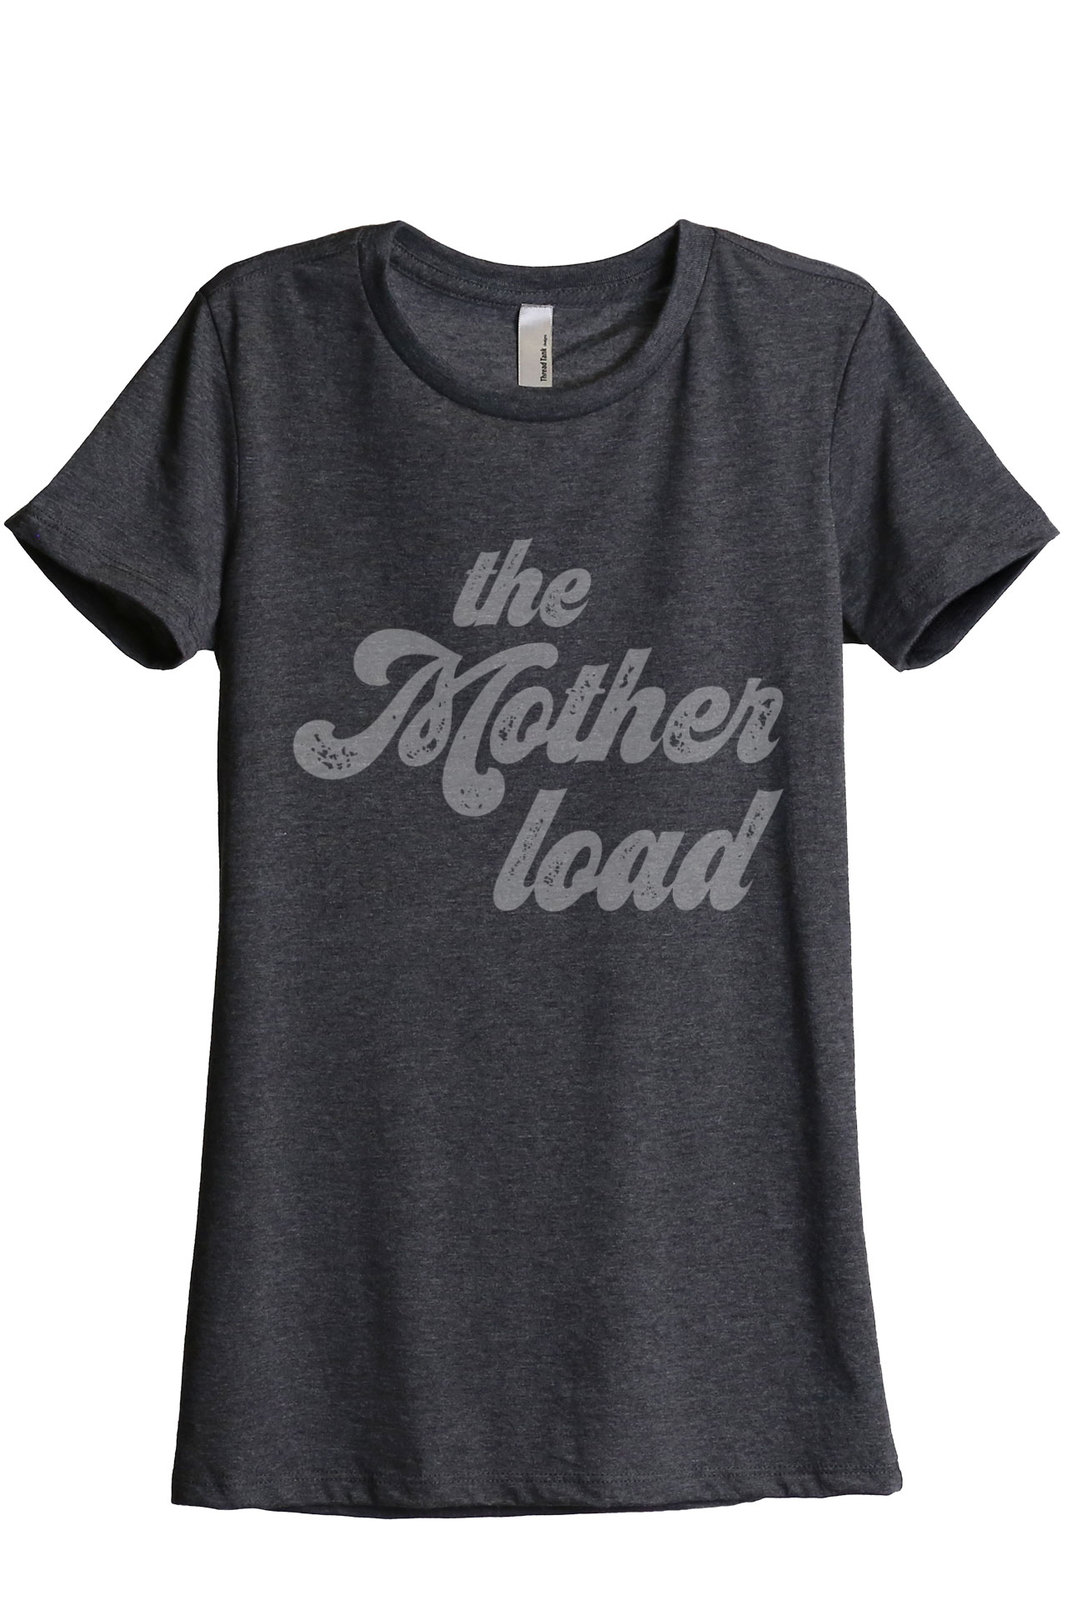 Thread Tank The Mother Load Women's Relaxed T-Shirt Tee Charcoal Grey